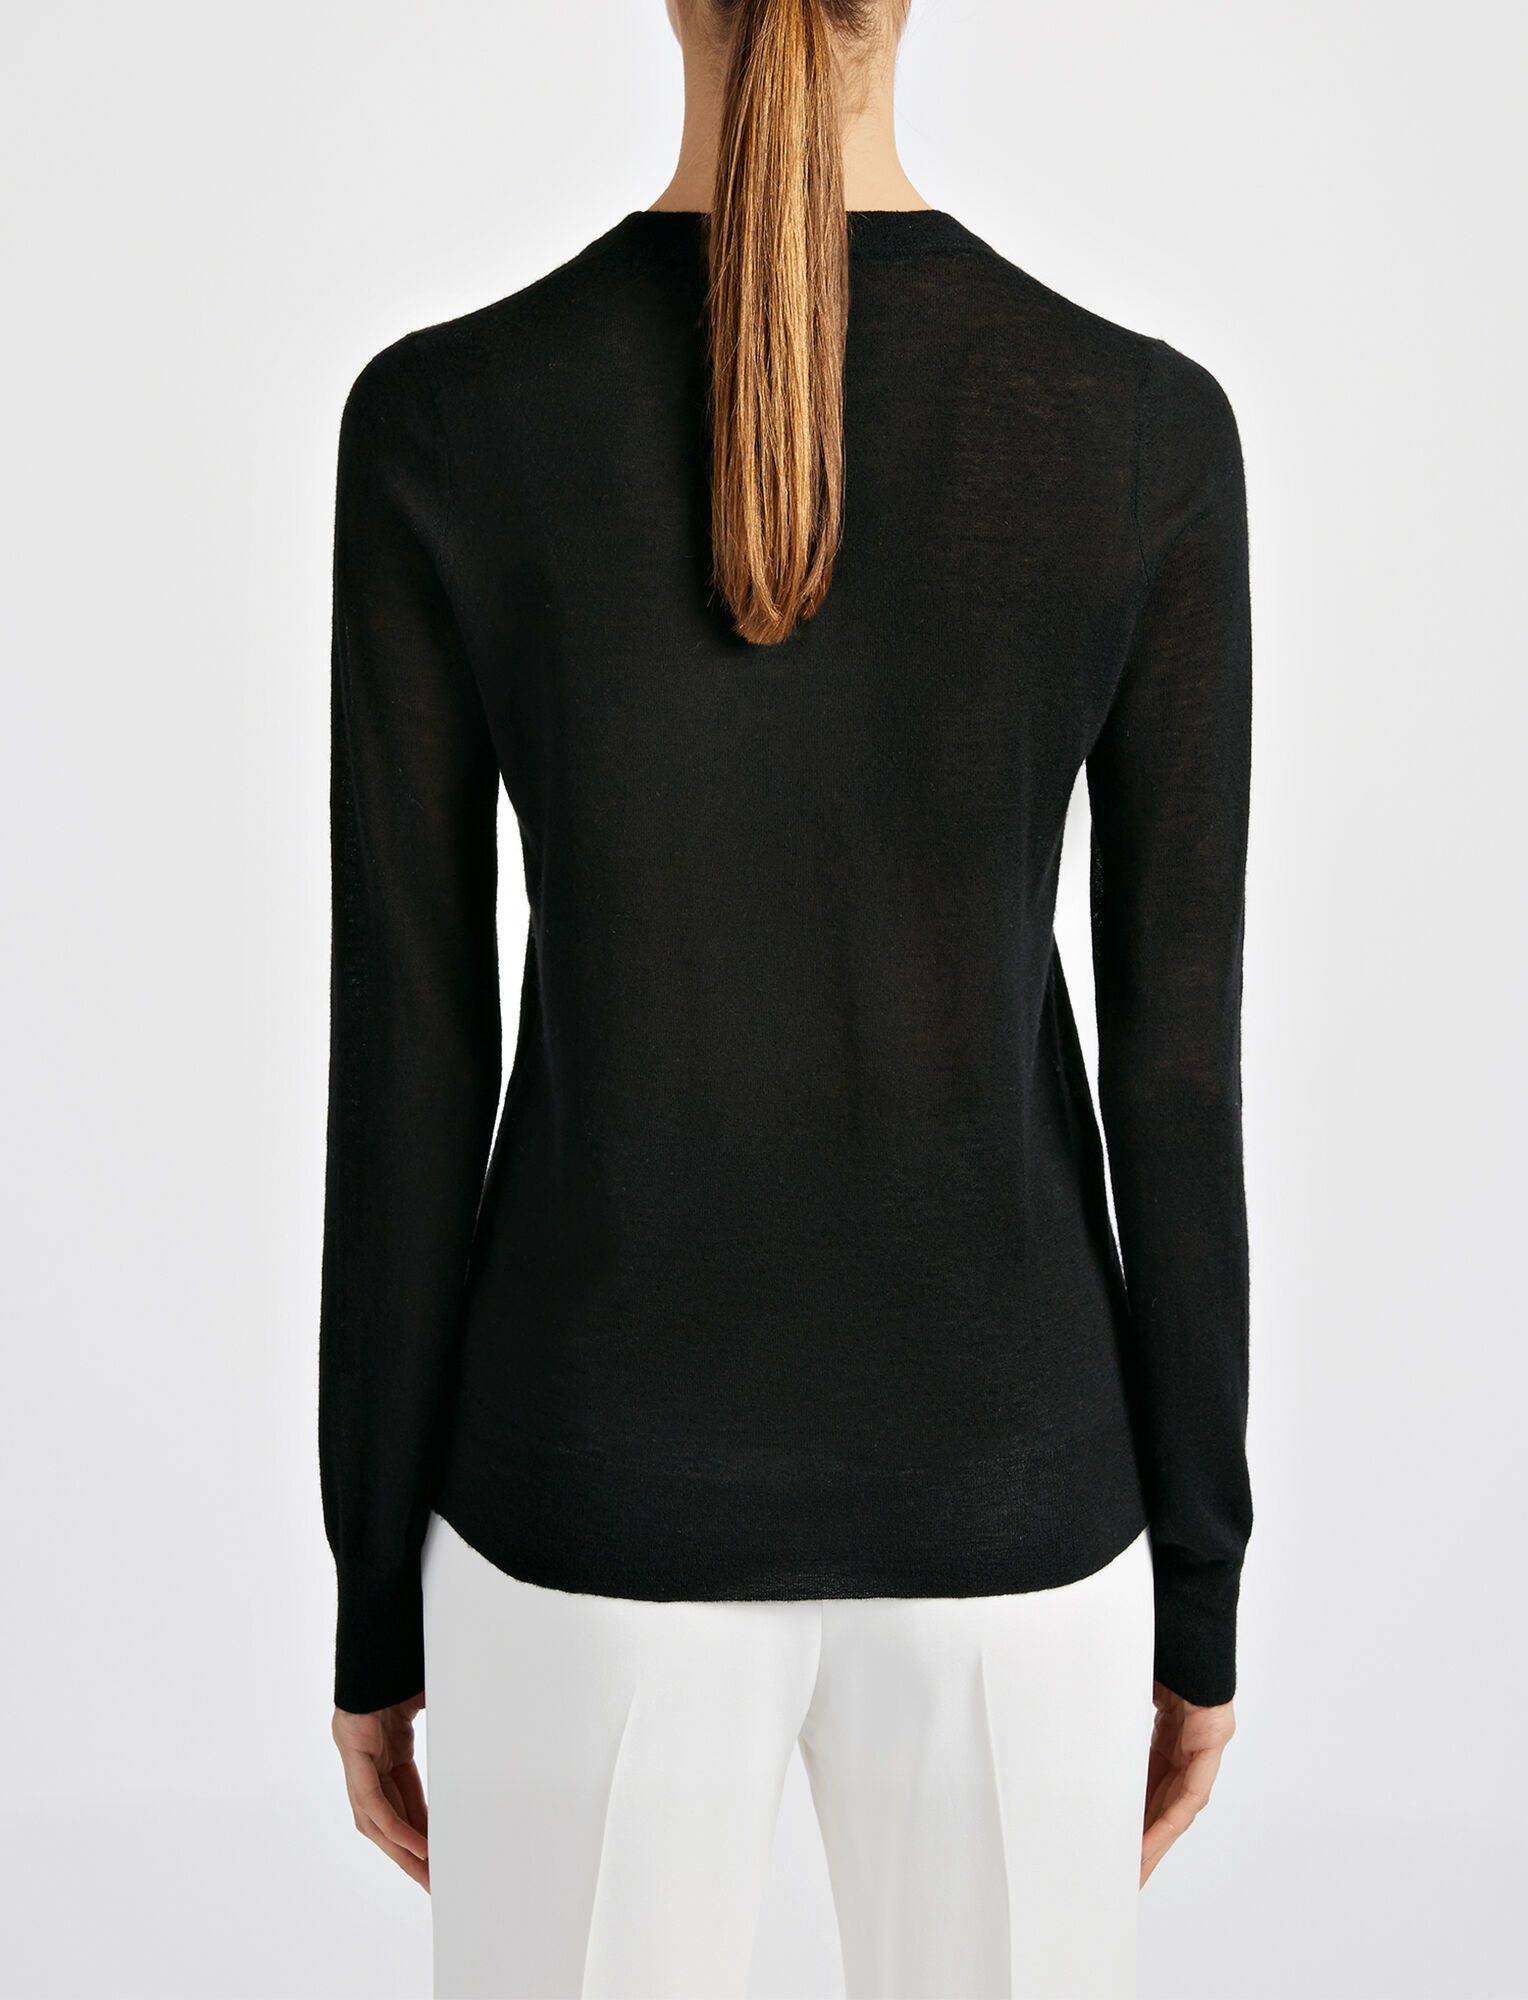 Joseph, Fitted Cashair Sweater, in BLACK